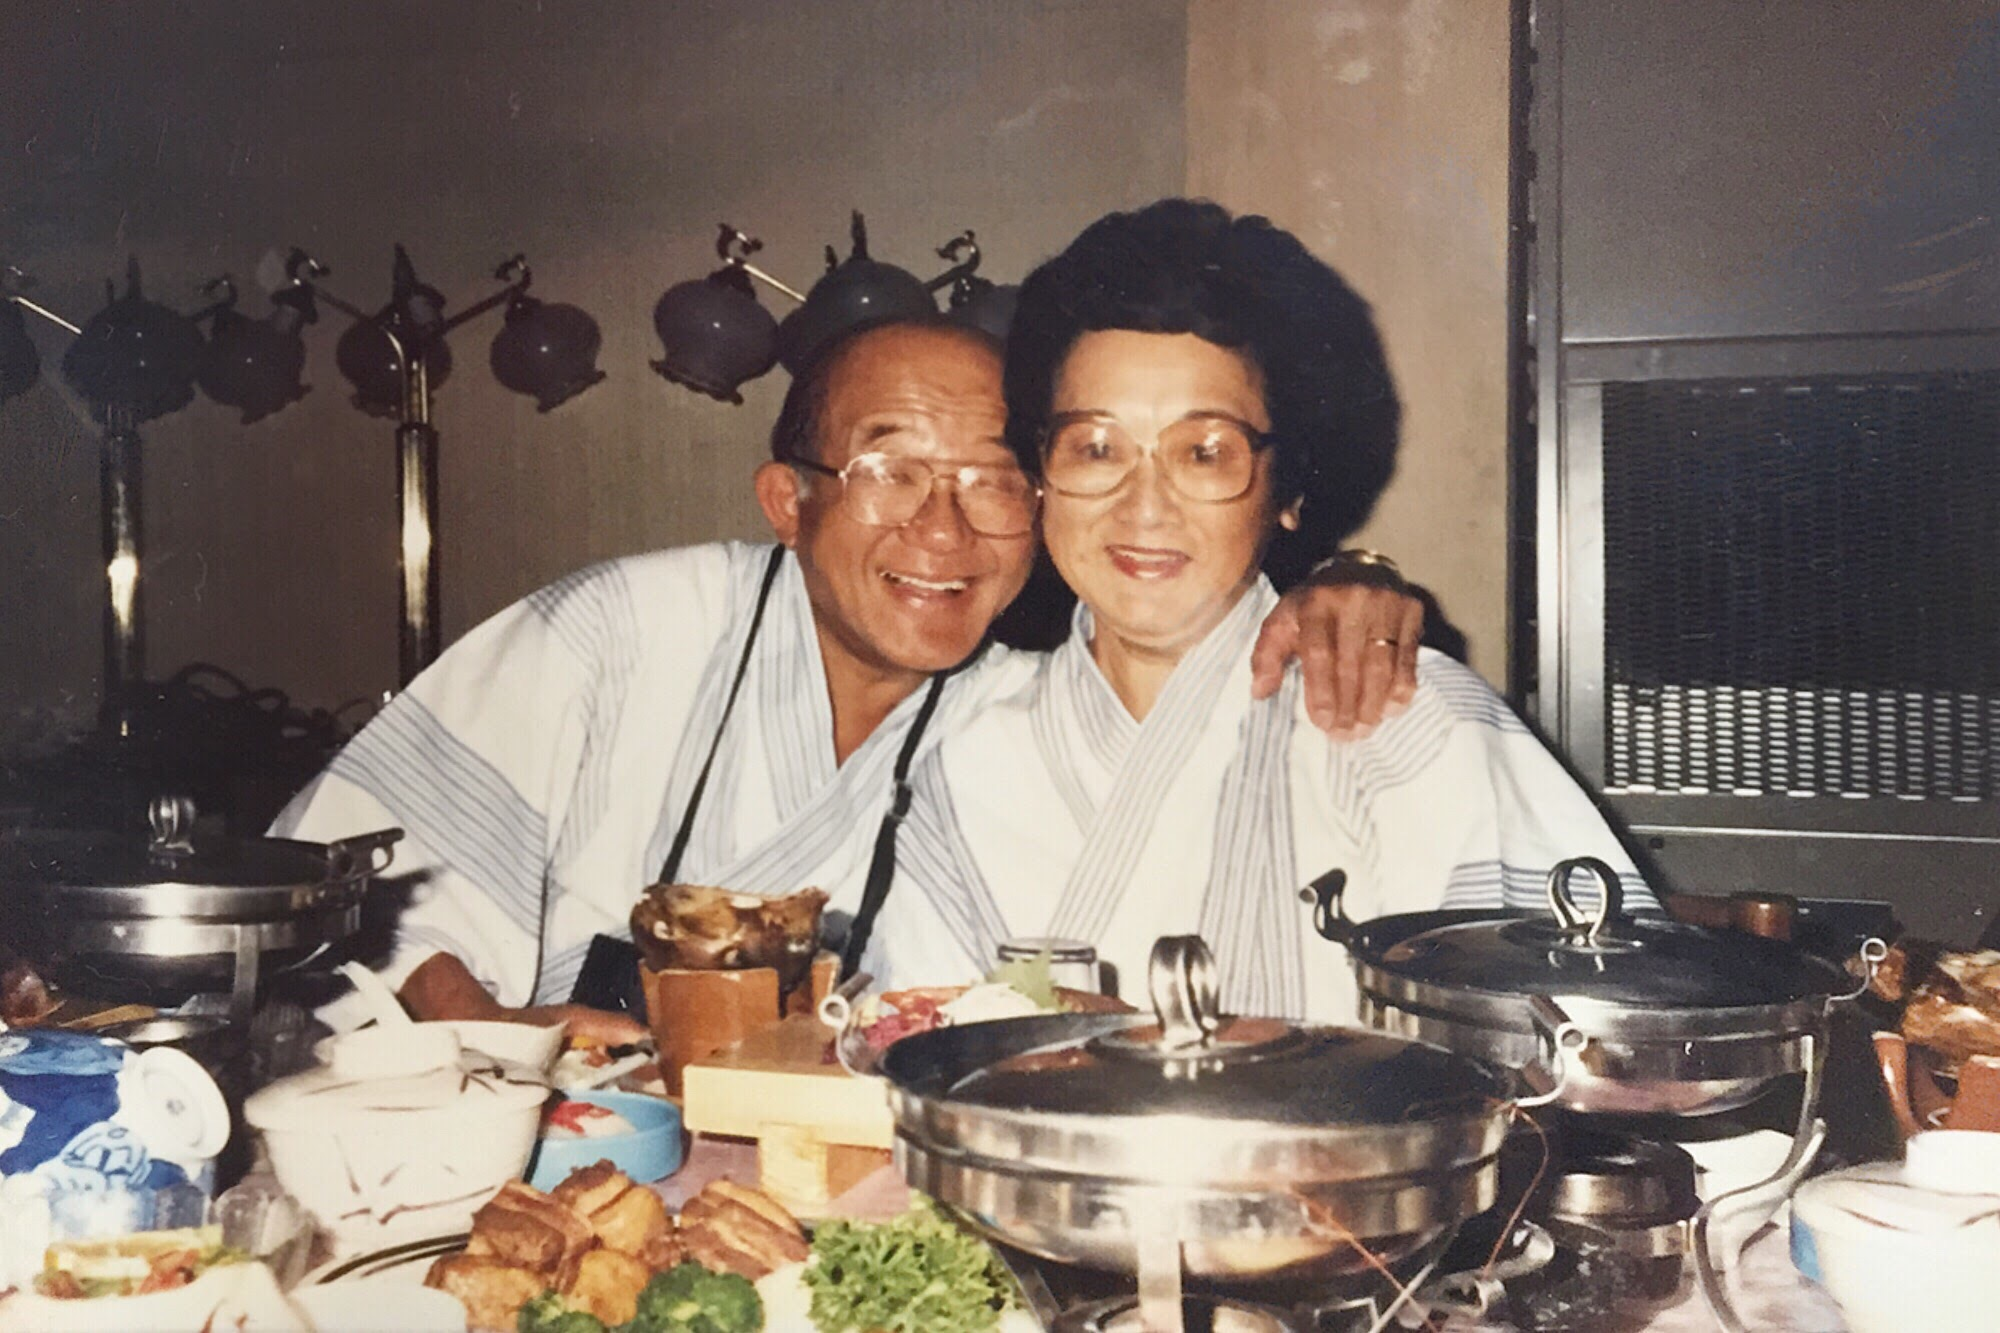 I love this photo of my grandparents. I found it last year when I was digging through old photos. I had never seen it before. It stuck out to me for two reasons : 1. They're in Japan. I never knew much about their travels here...but when I see photos like this now, I instantly connect with them. I can feel the Japanese culture and I feel this deep deep bond to them...to our heritage...to our story. 2. That look of pure joy on their faces. It's so genuine. And was exactly how I always knew these two. Full of love. Full of love. The greatest couple I ever knew.